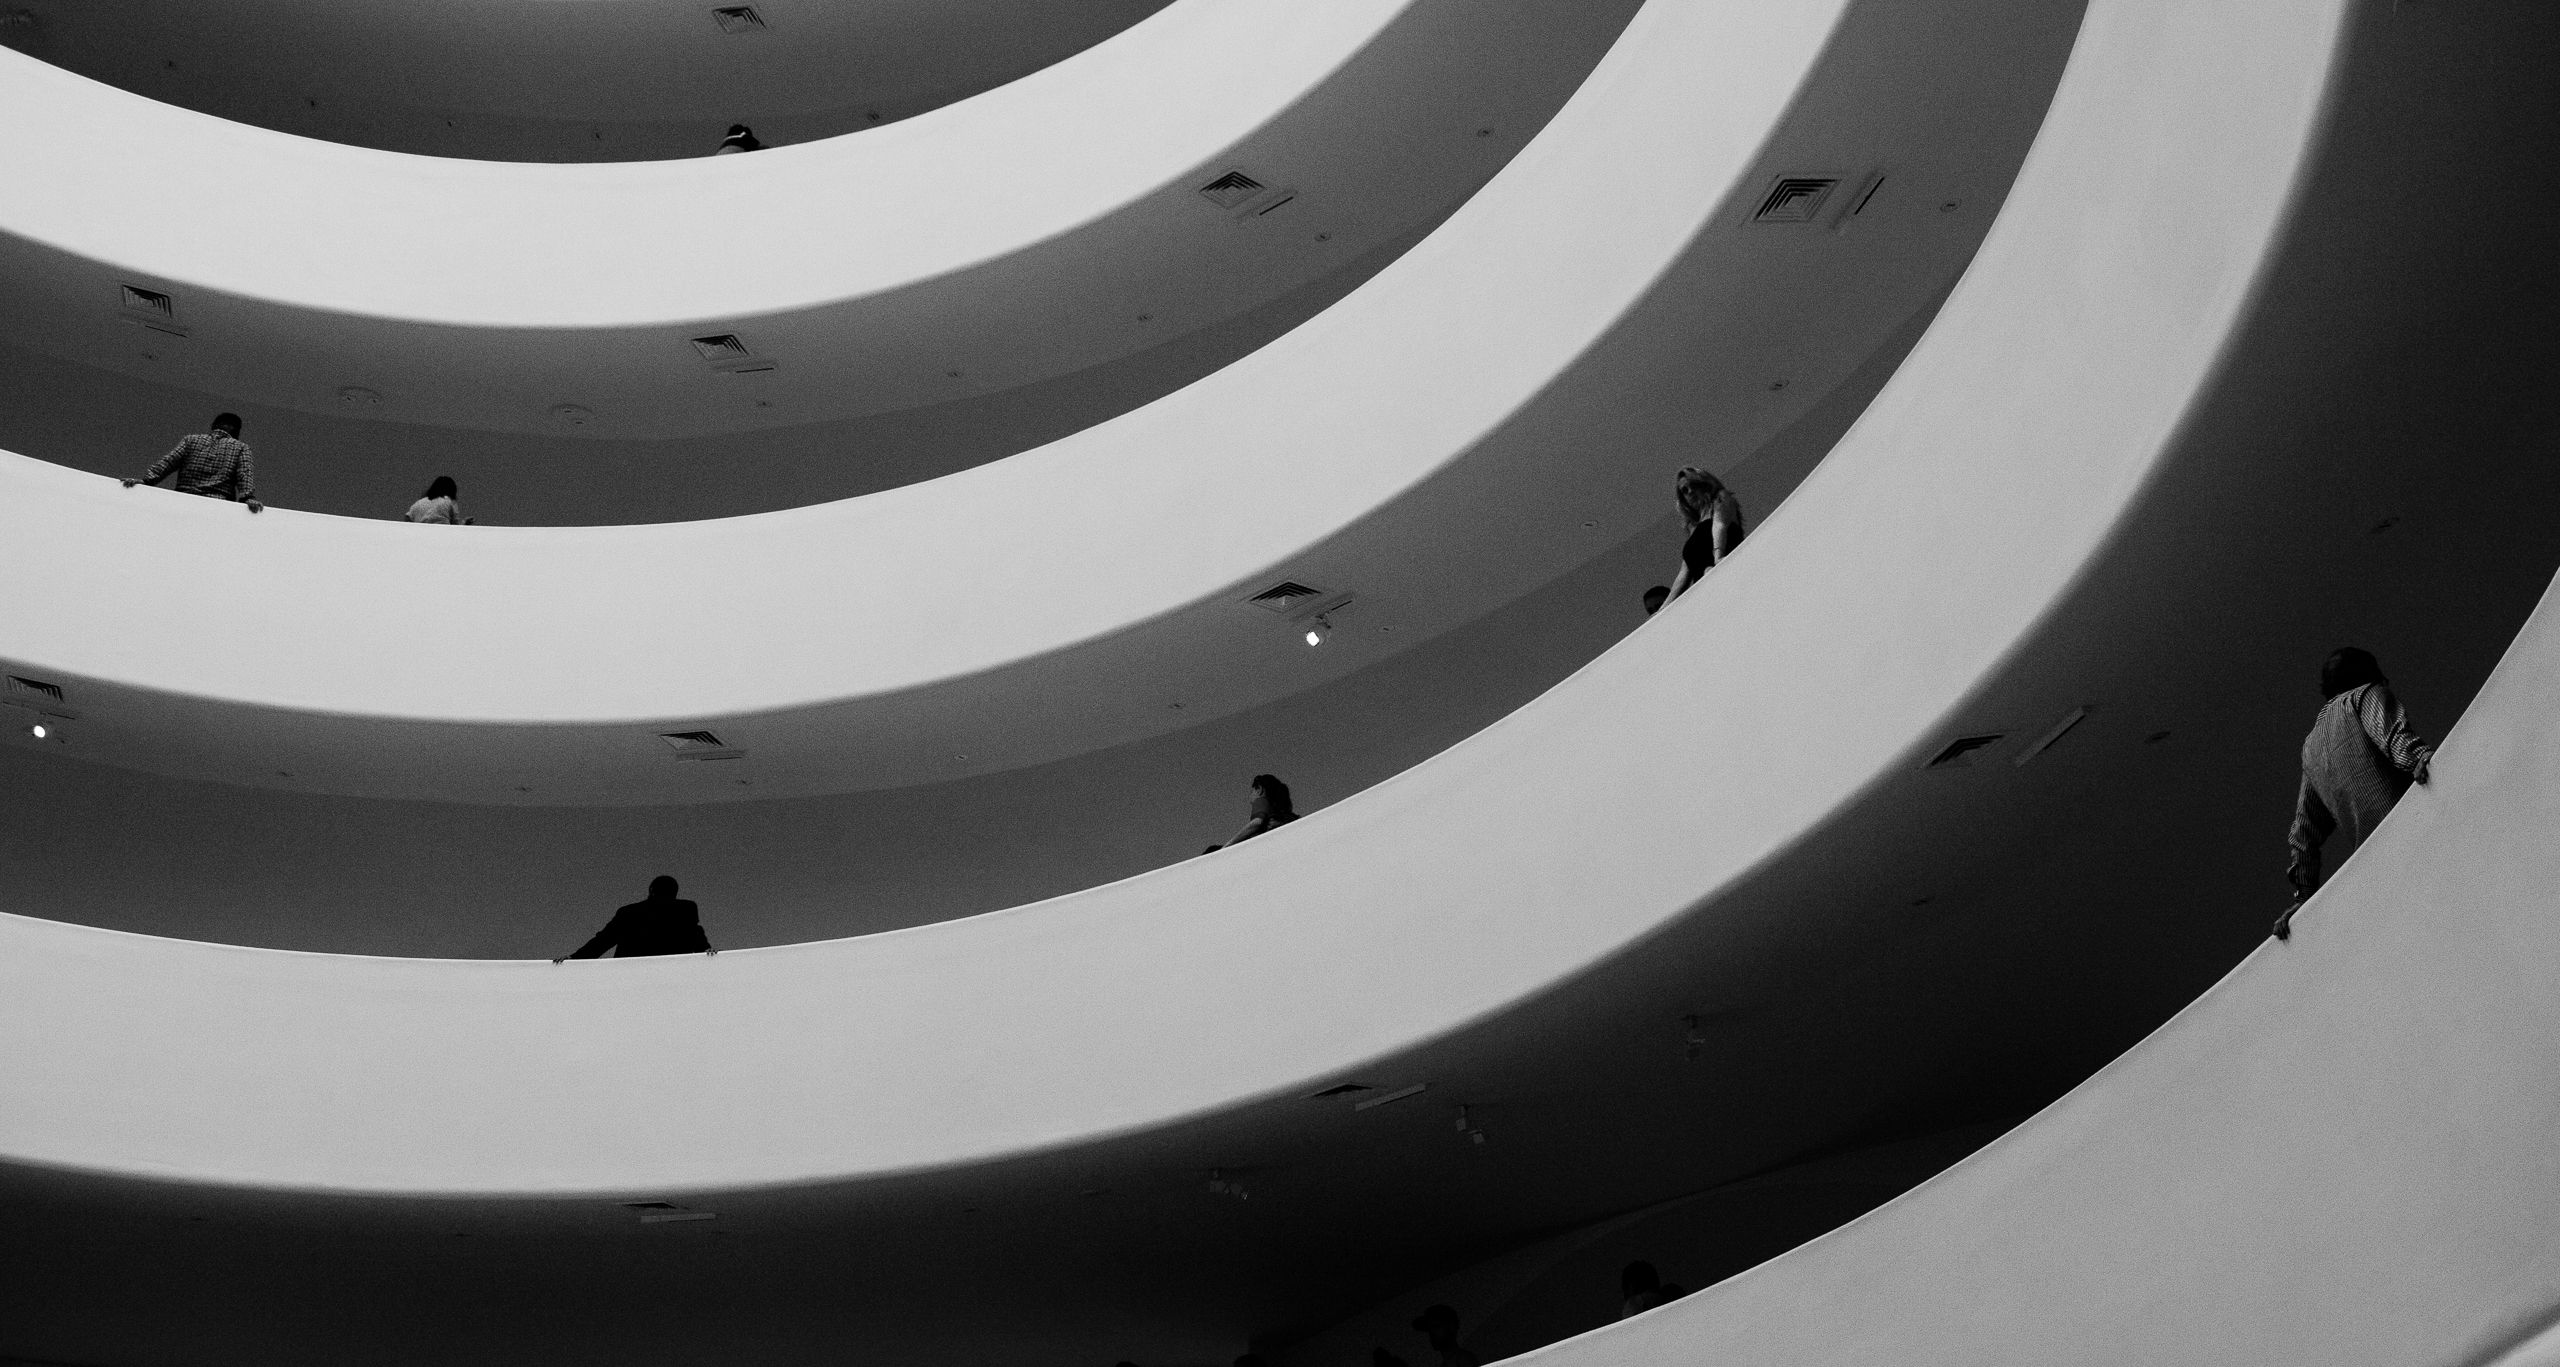 Visitors rest on the railings at the Guggenheim